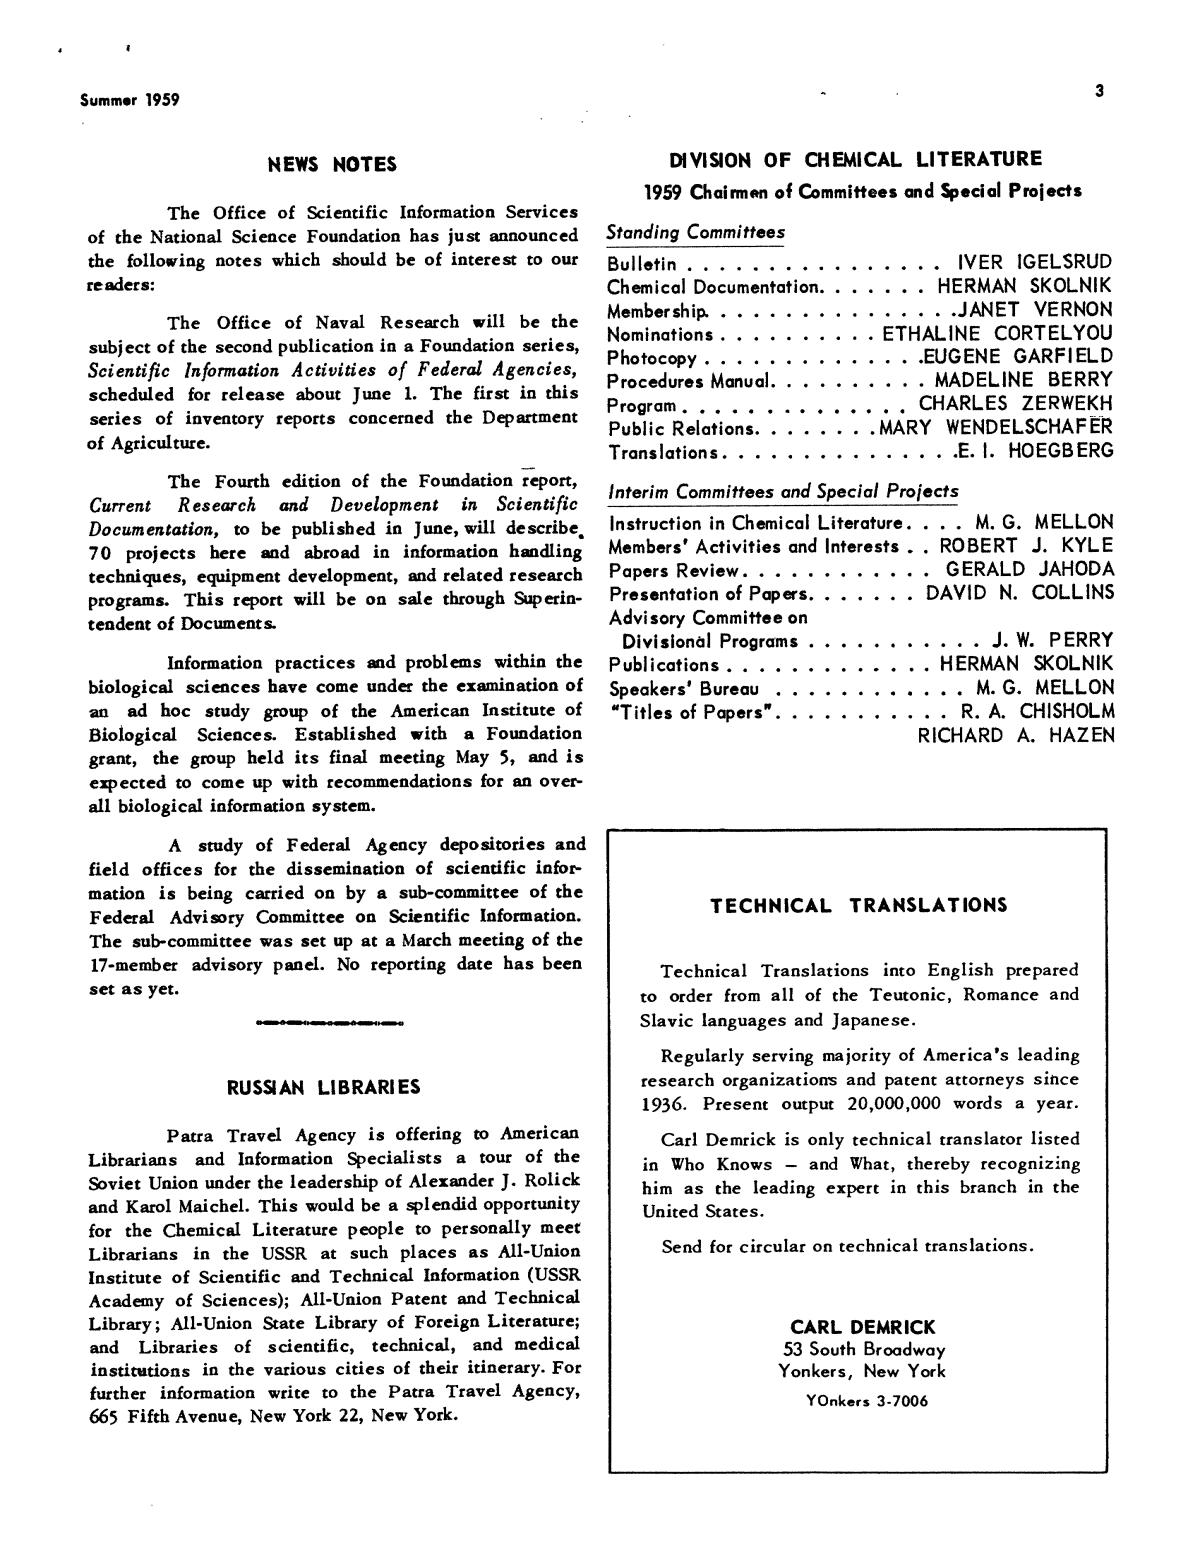 Chemical Literature, Volume 11, Number 2, Summer 1959                                                                                                      3